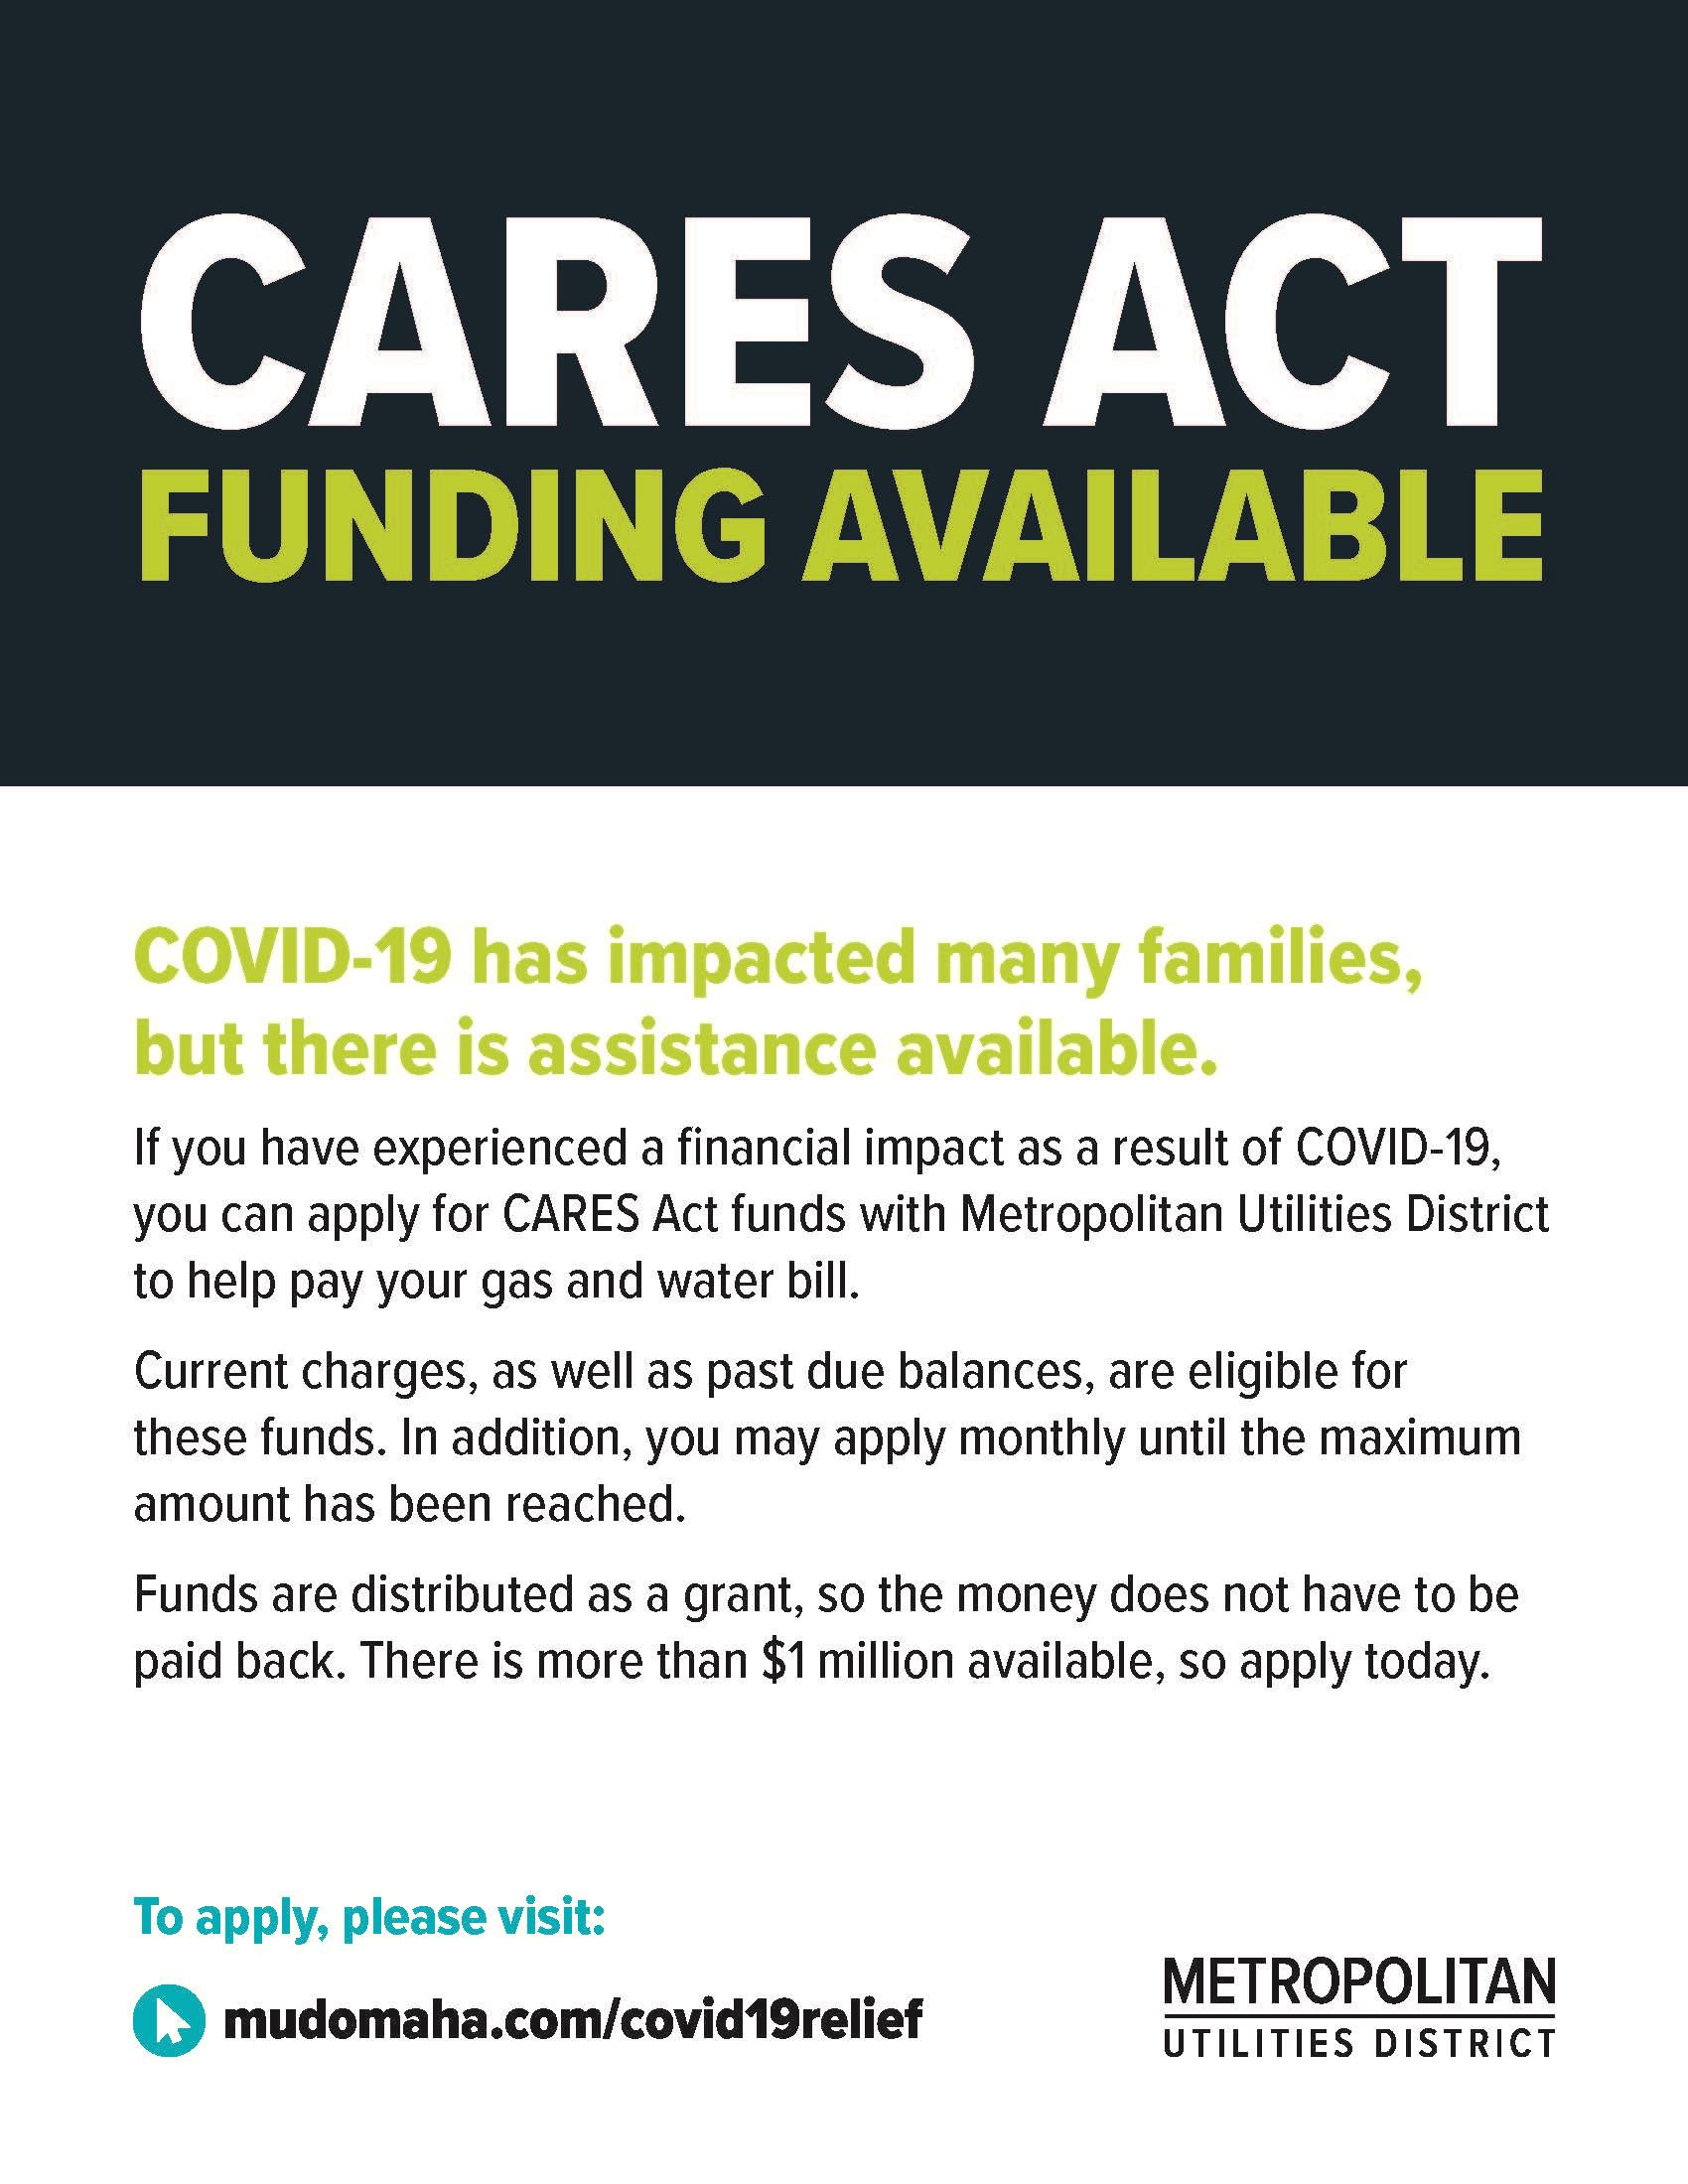 FLI_CARES_ACT_COVID19_D1